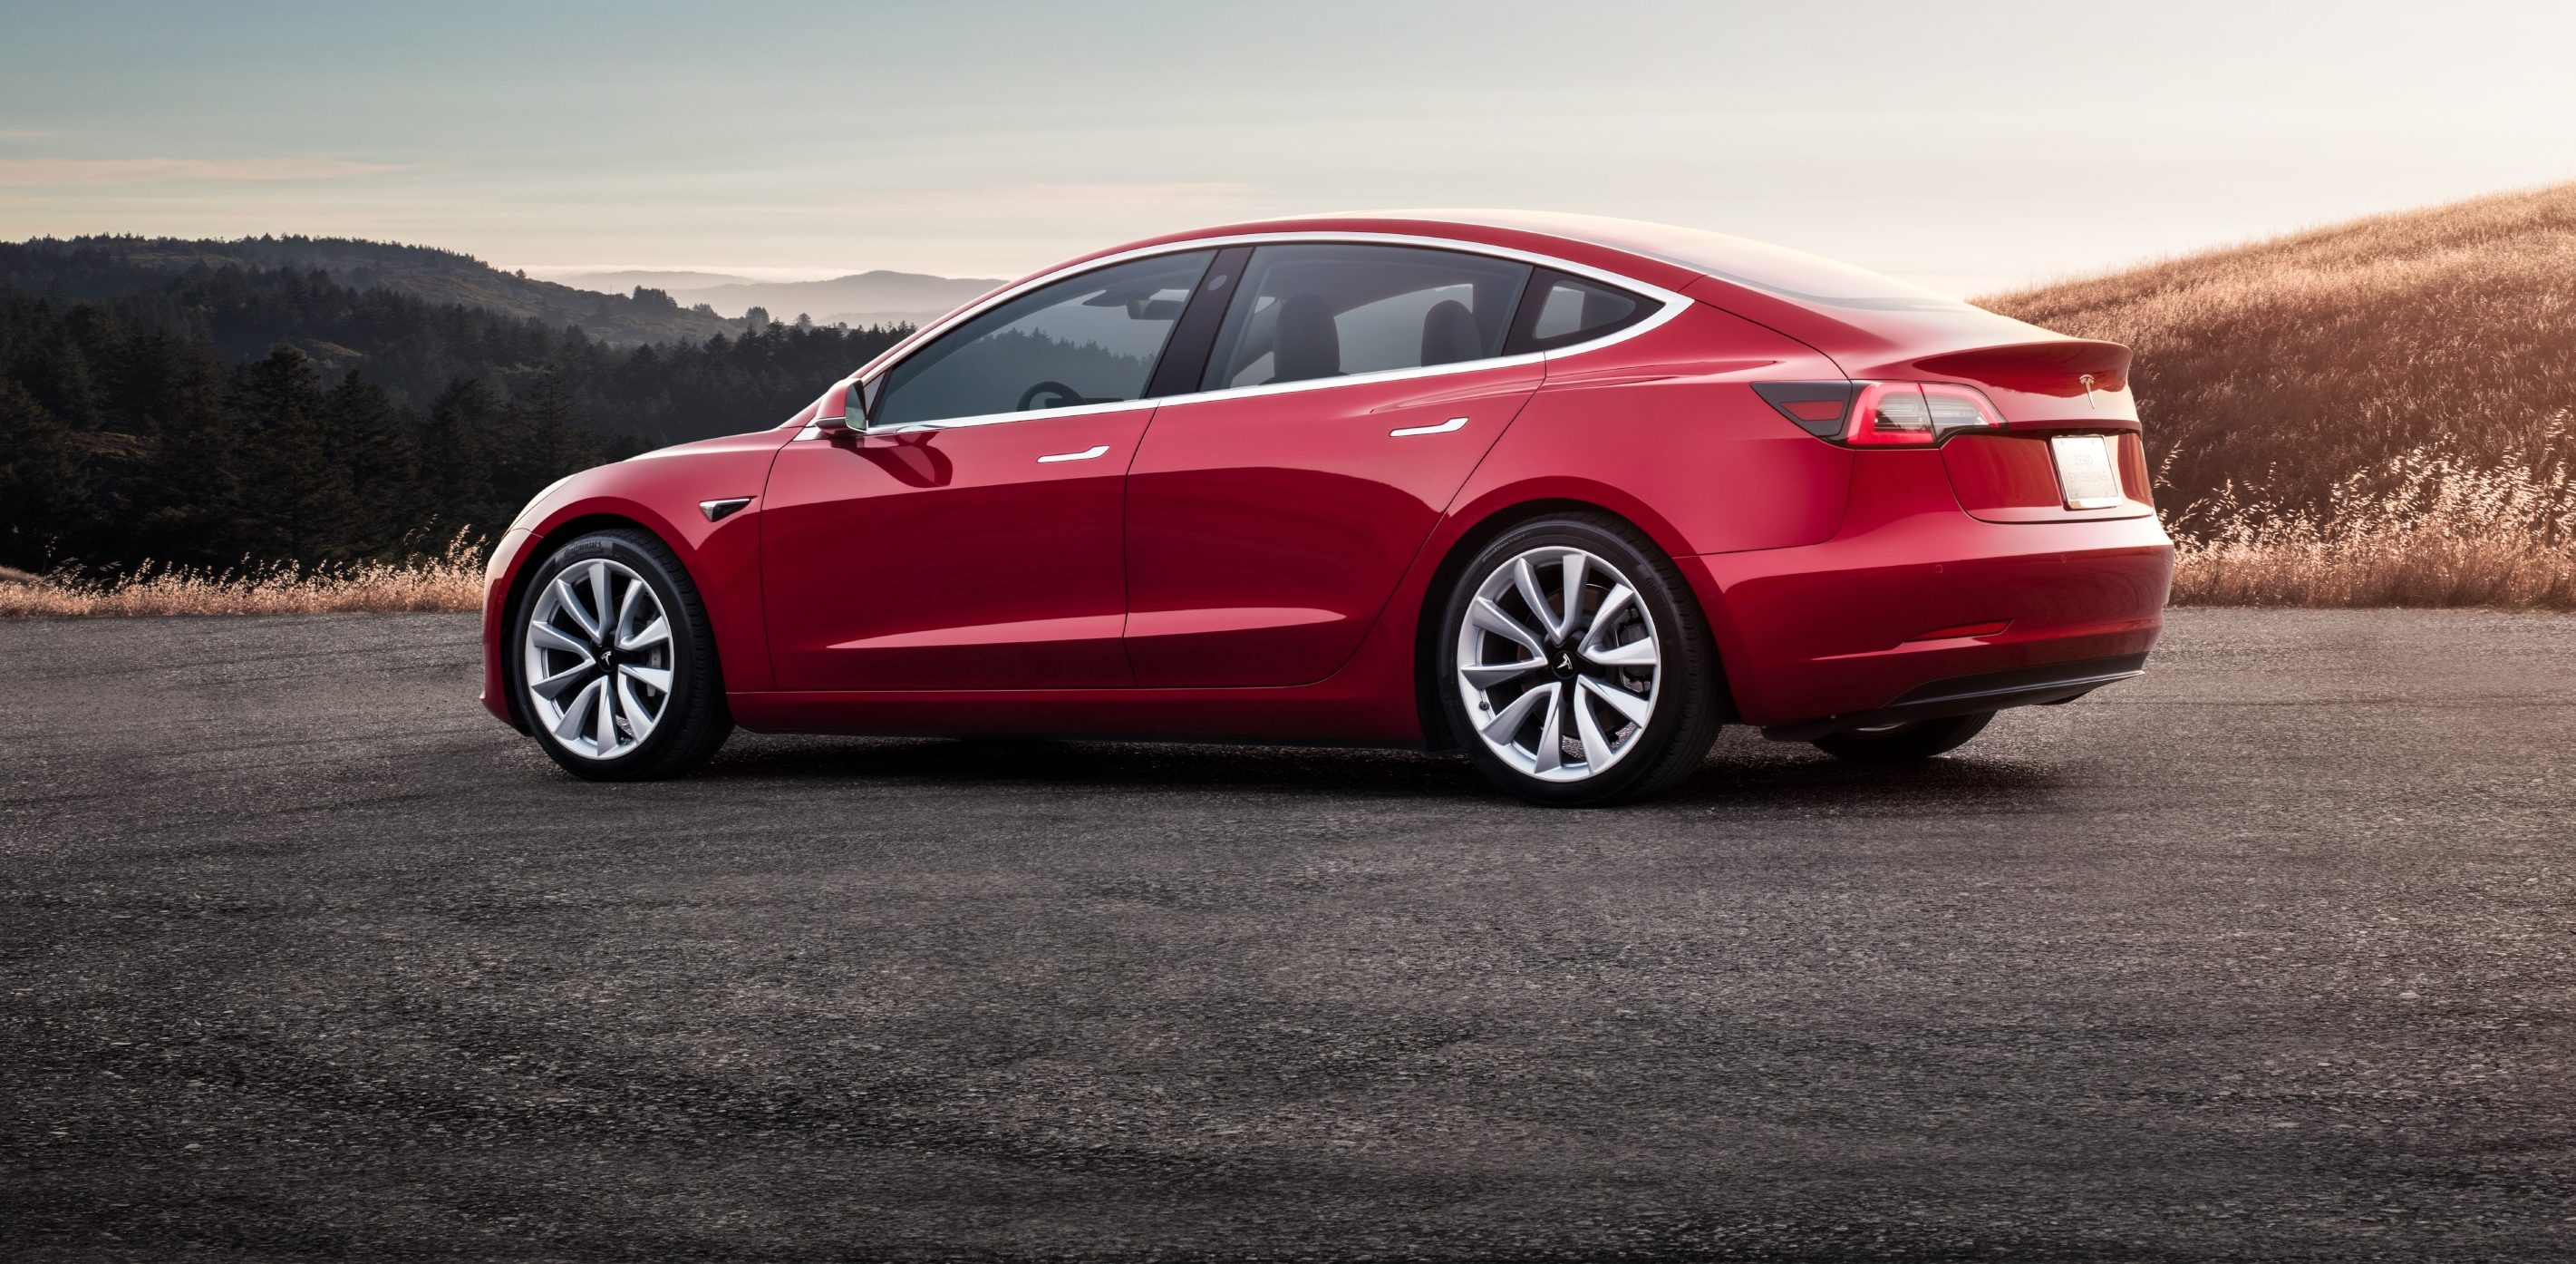 Electric Car Battery Lease Tesla Model 3 Lease Program Opens Door To Future Ride Hailing Network